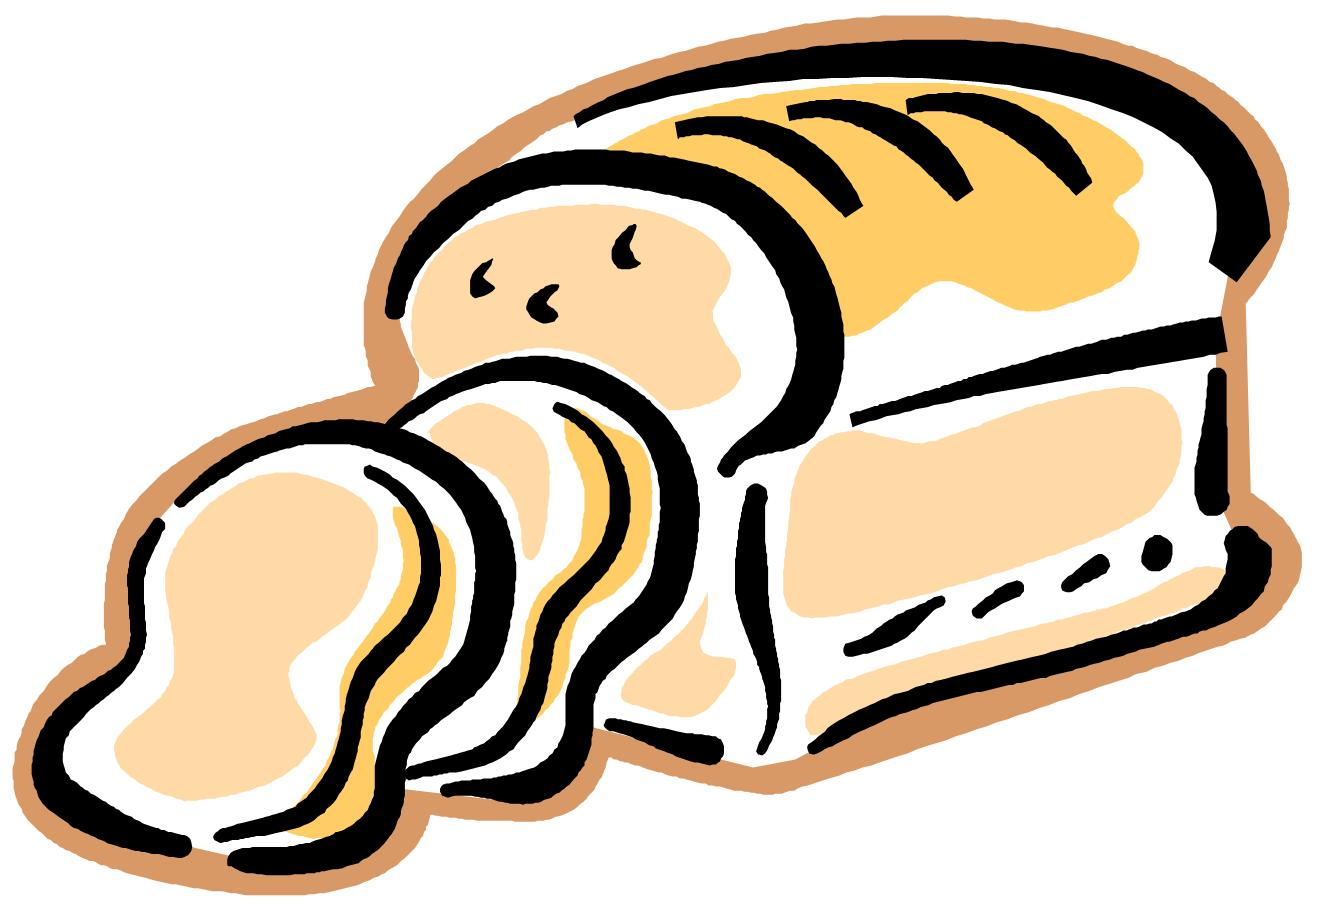 Randome clipart loaf bread Download on free bread com